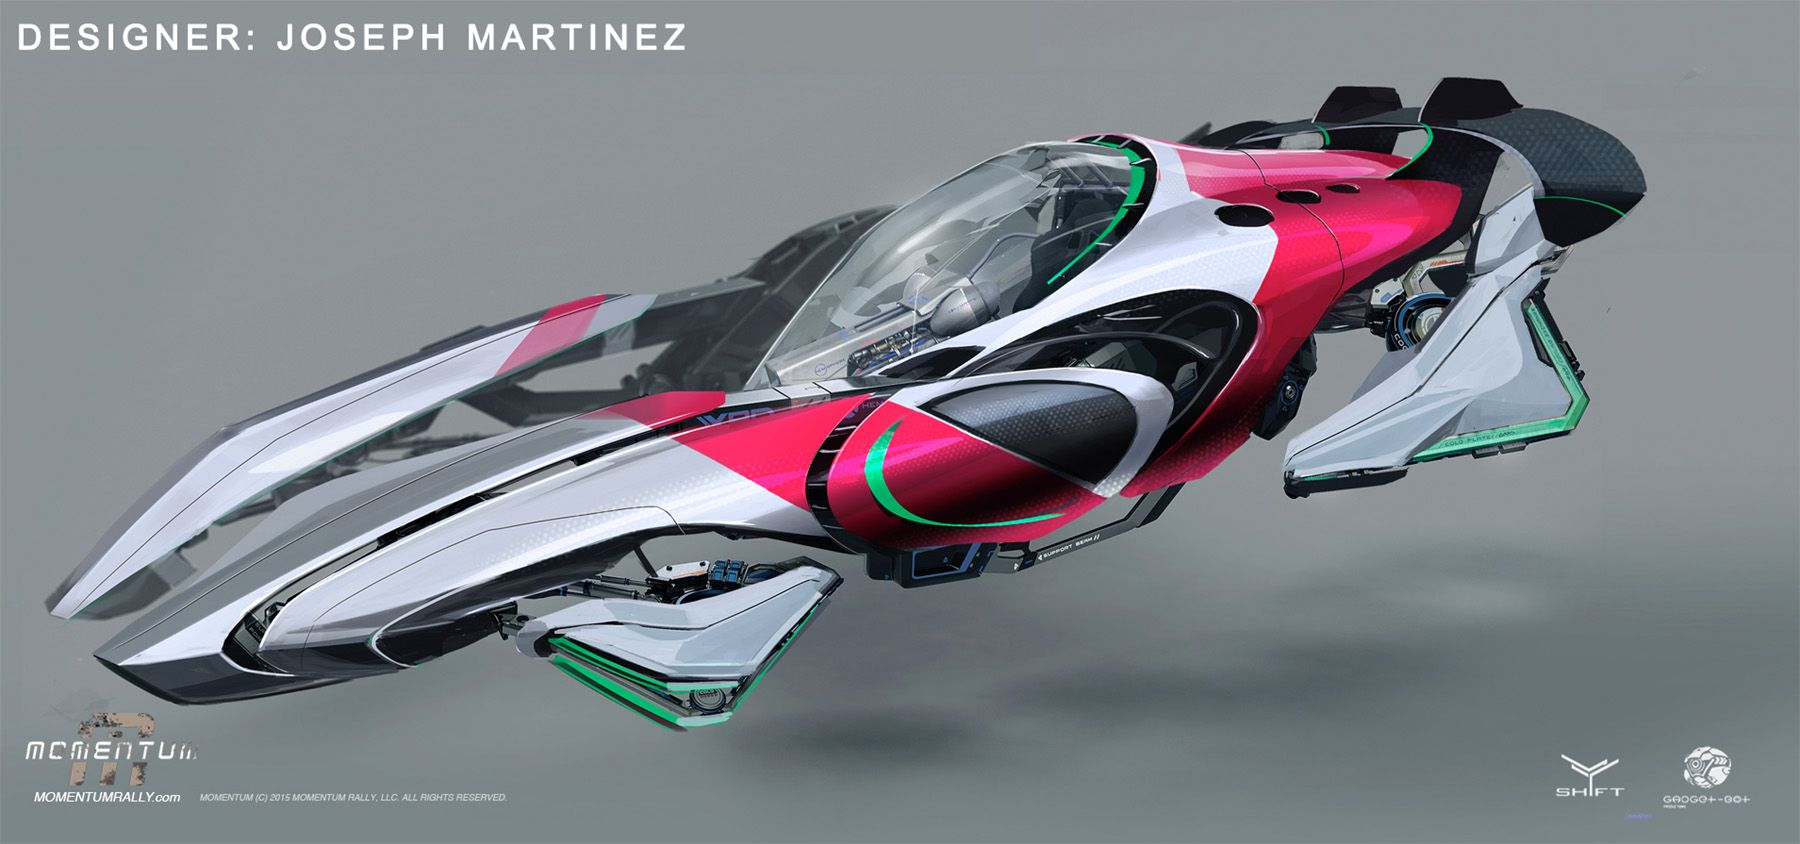 Vehicle designs from Momentum Spaceship concept